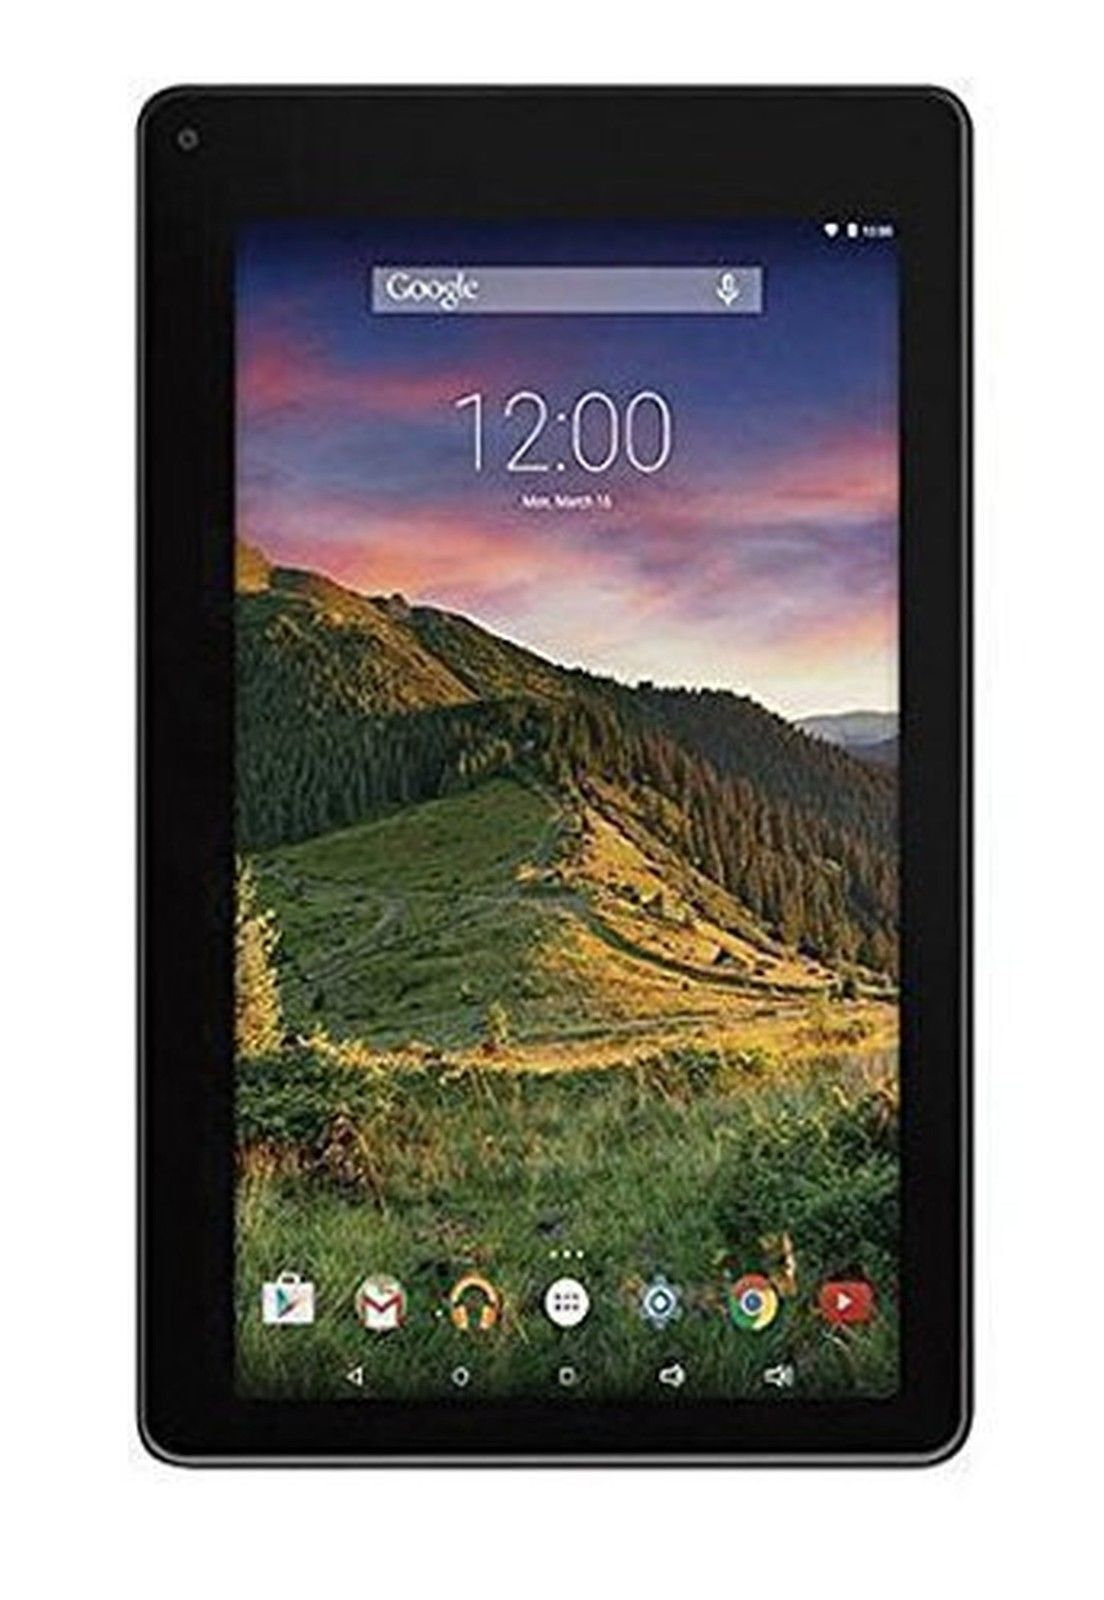 RCA Voyager II Tablet 8GB Quad Core Android 5.0 Black 7